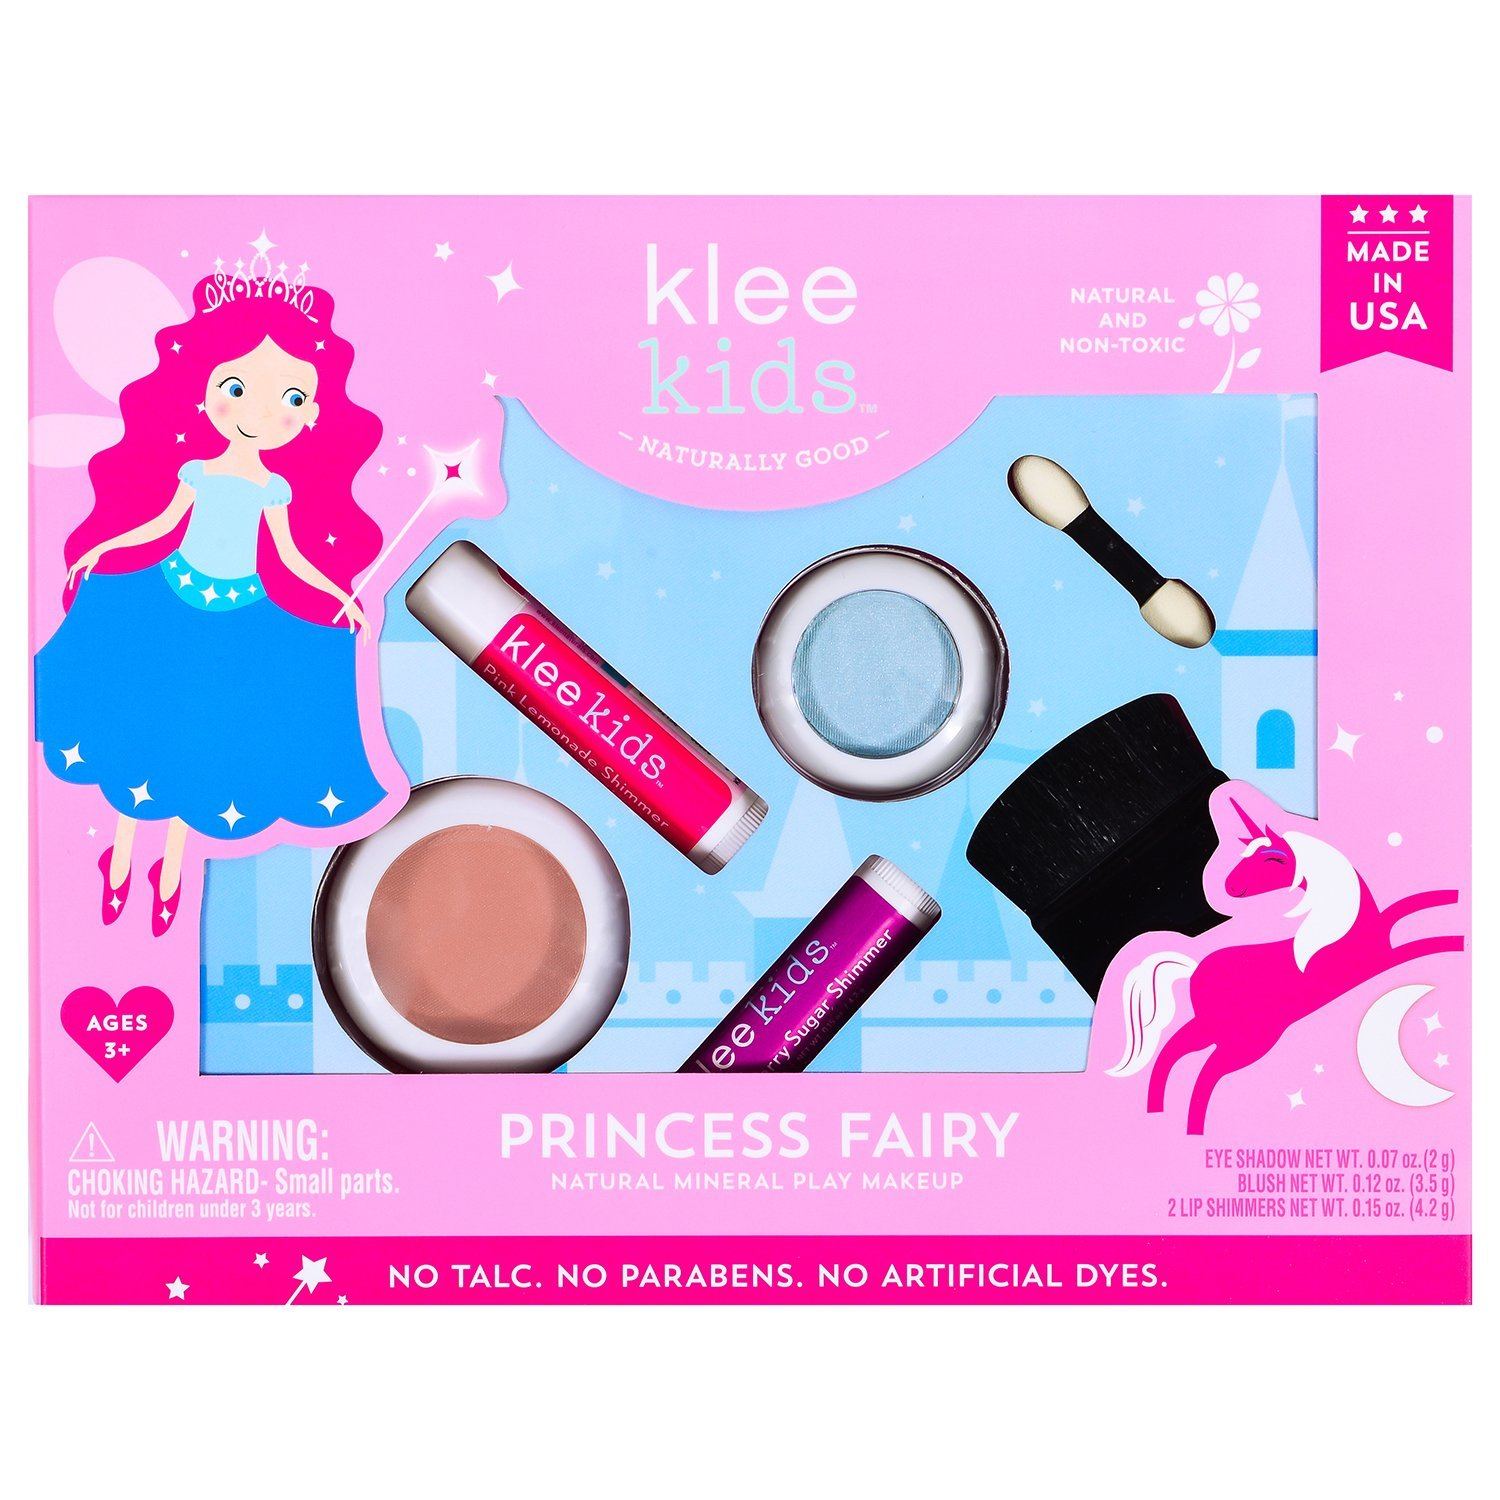 Princess Fairy - Klee Kids Natural Mineral Makeup 4 Piece Kit with Pressed Powder Compacts. Non-Toxic. Made in USA. by Klee Naturals